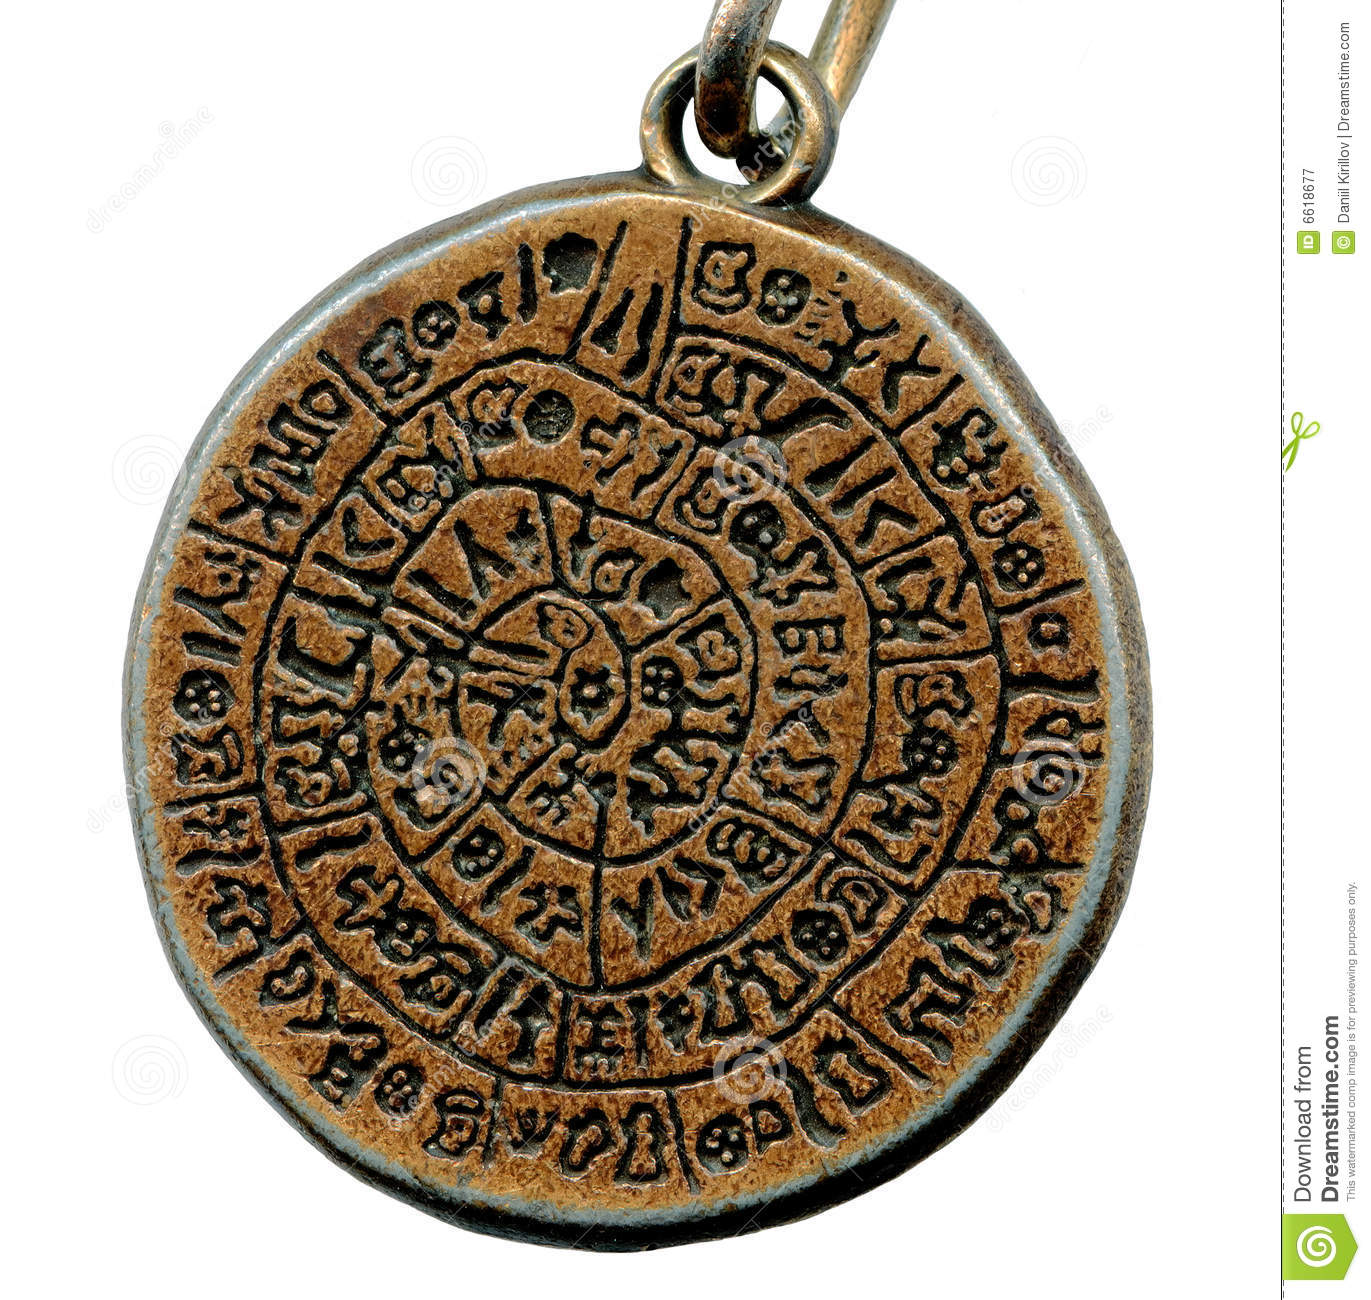 Vintage Mystery Amulet From Old Metal Royalty Free Stock